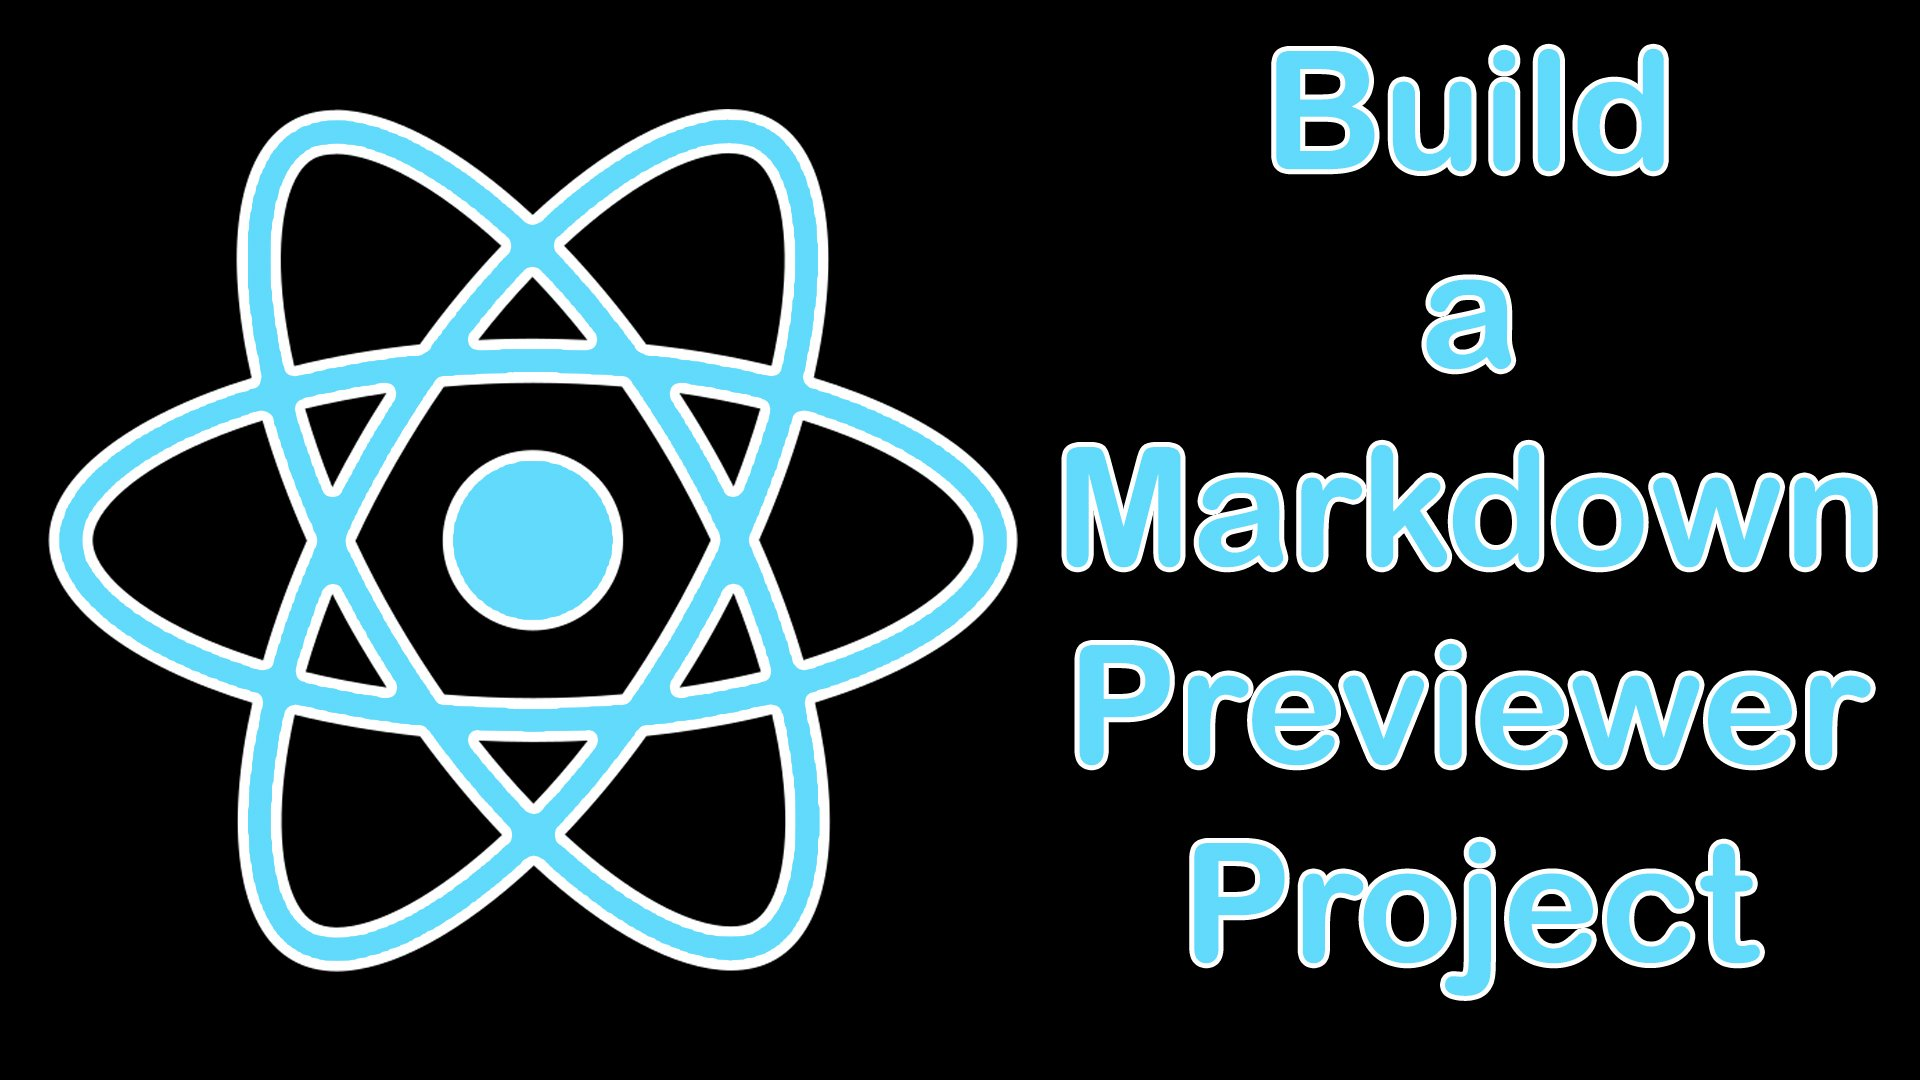 ReactJS Build a Markdown Previewer Project